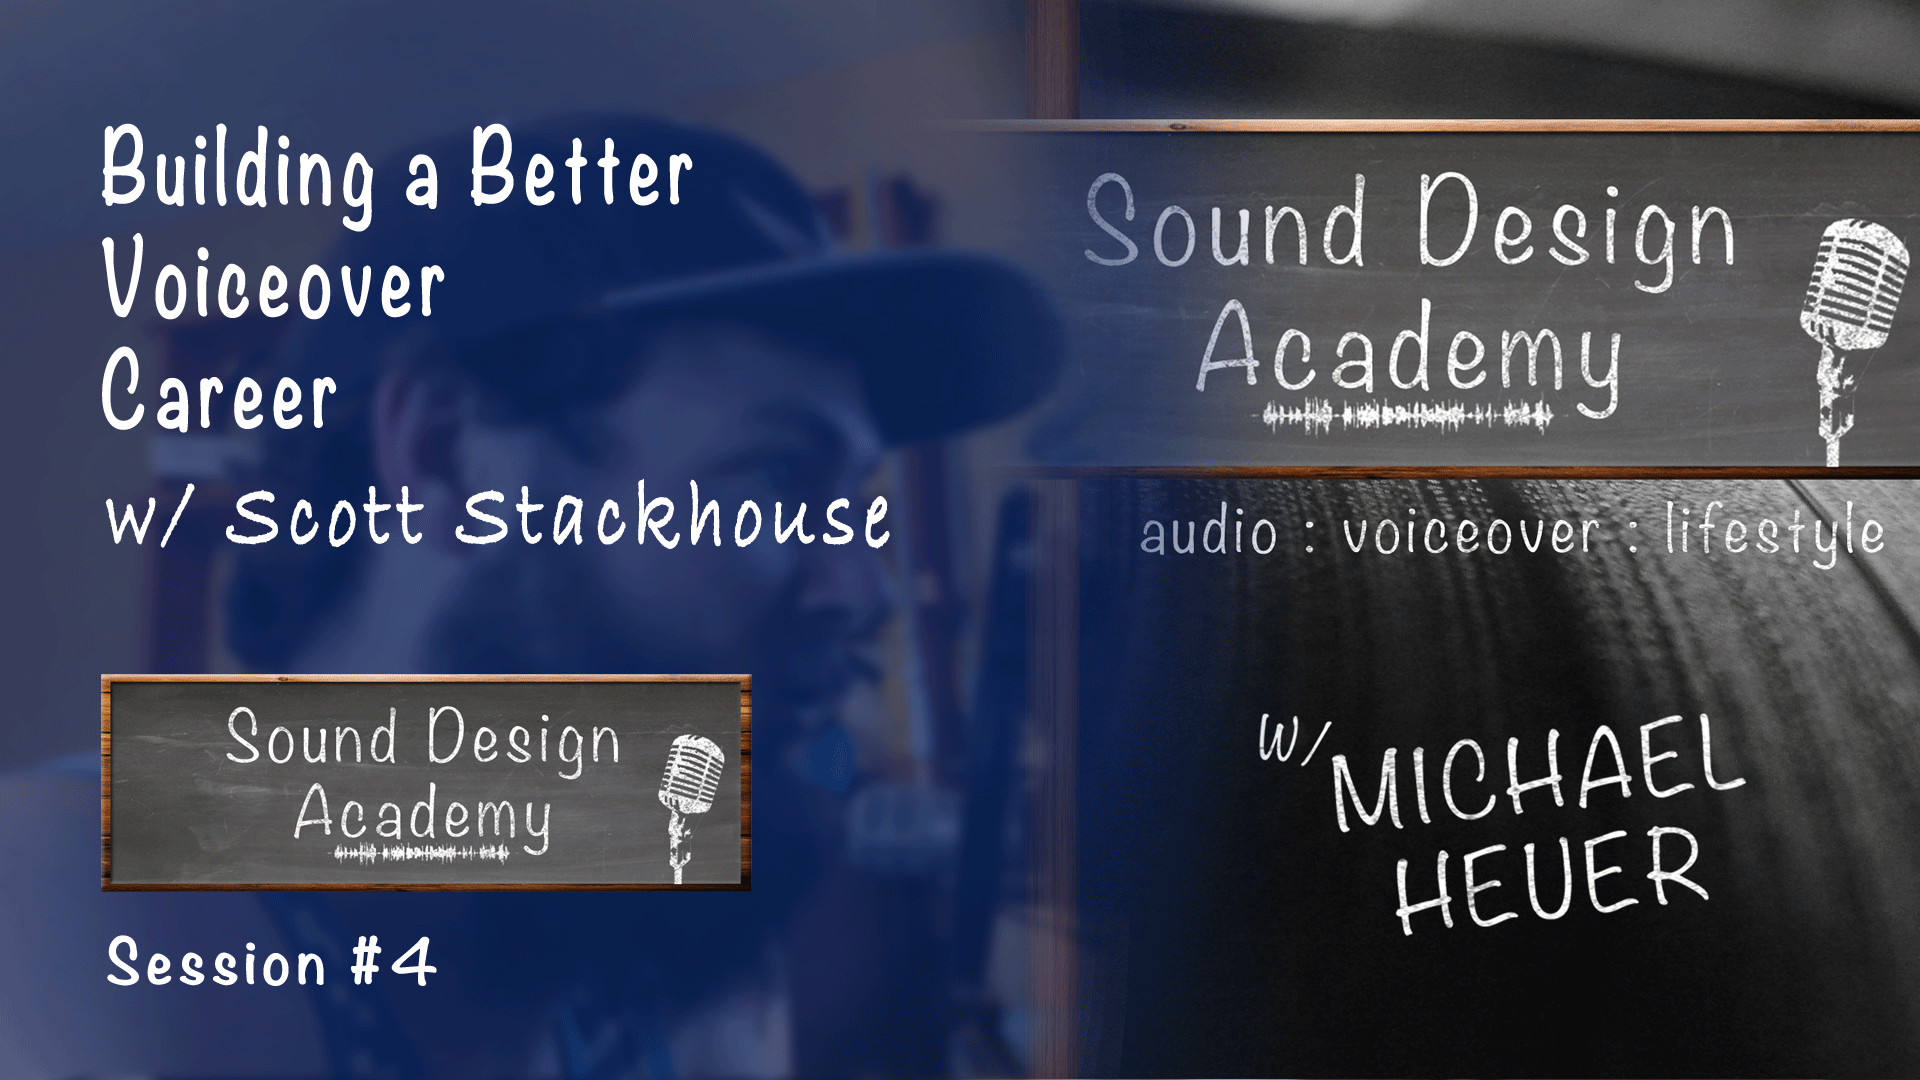 sound design academy session 4 - building a better voiceover career with scott stackhouse